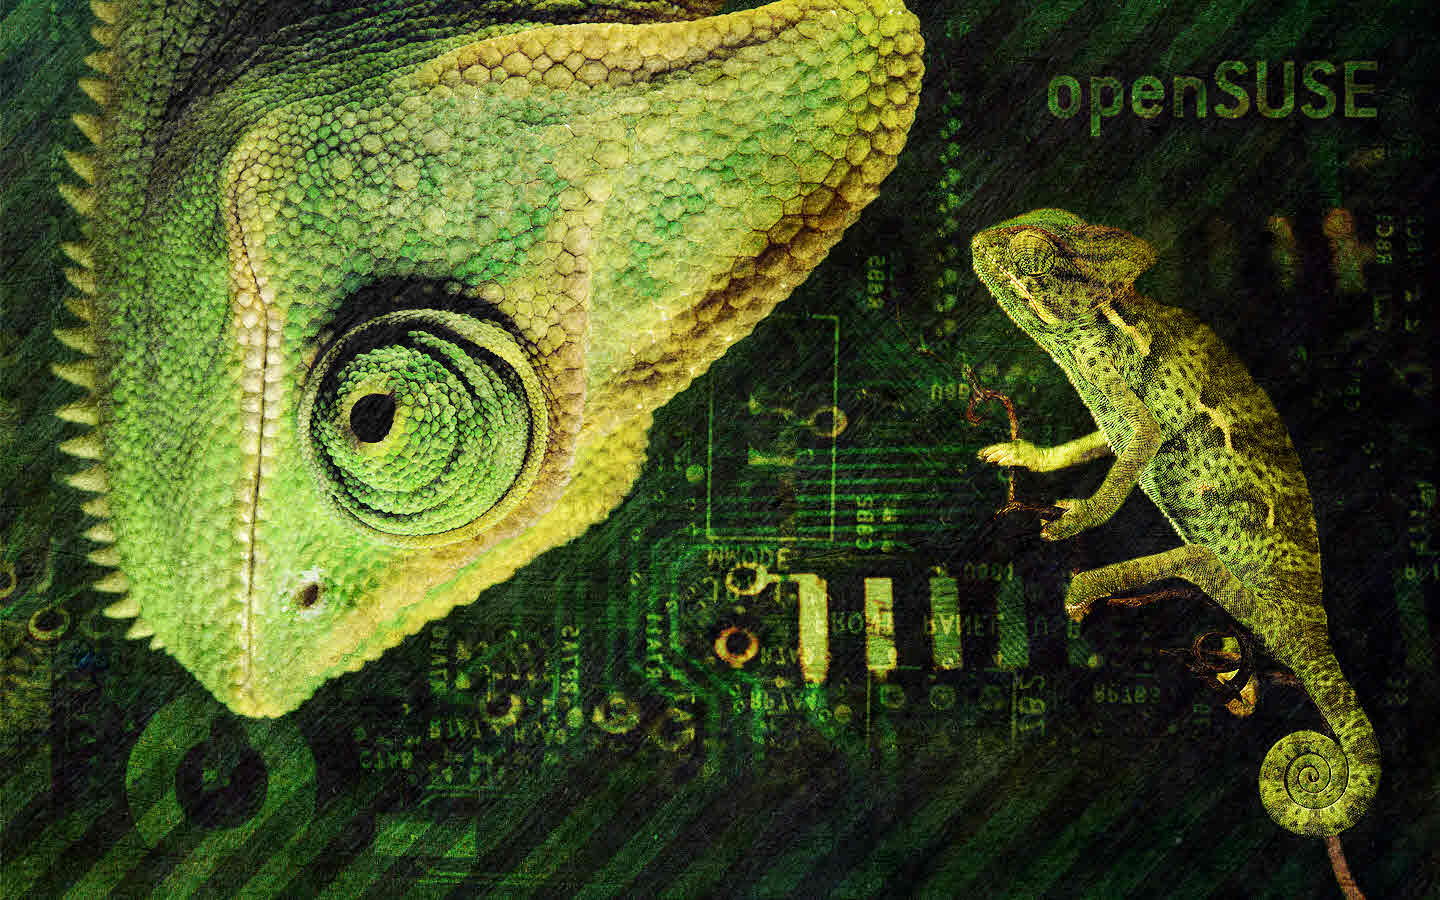 wallpapers opensuse